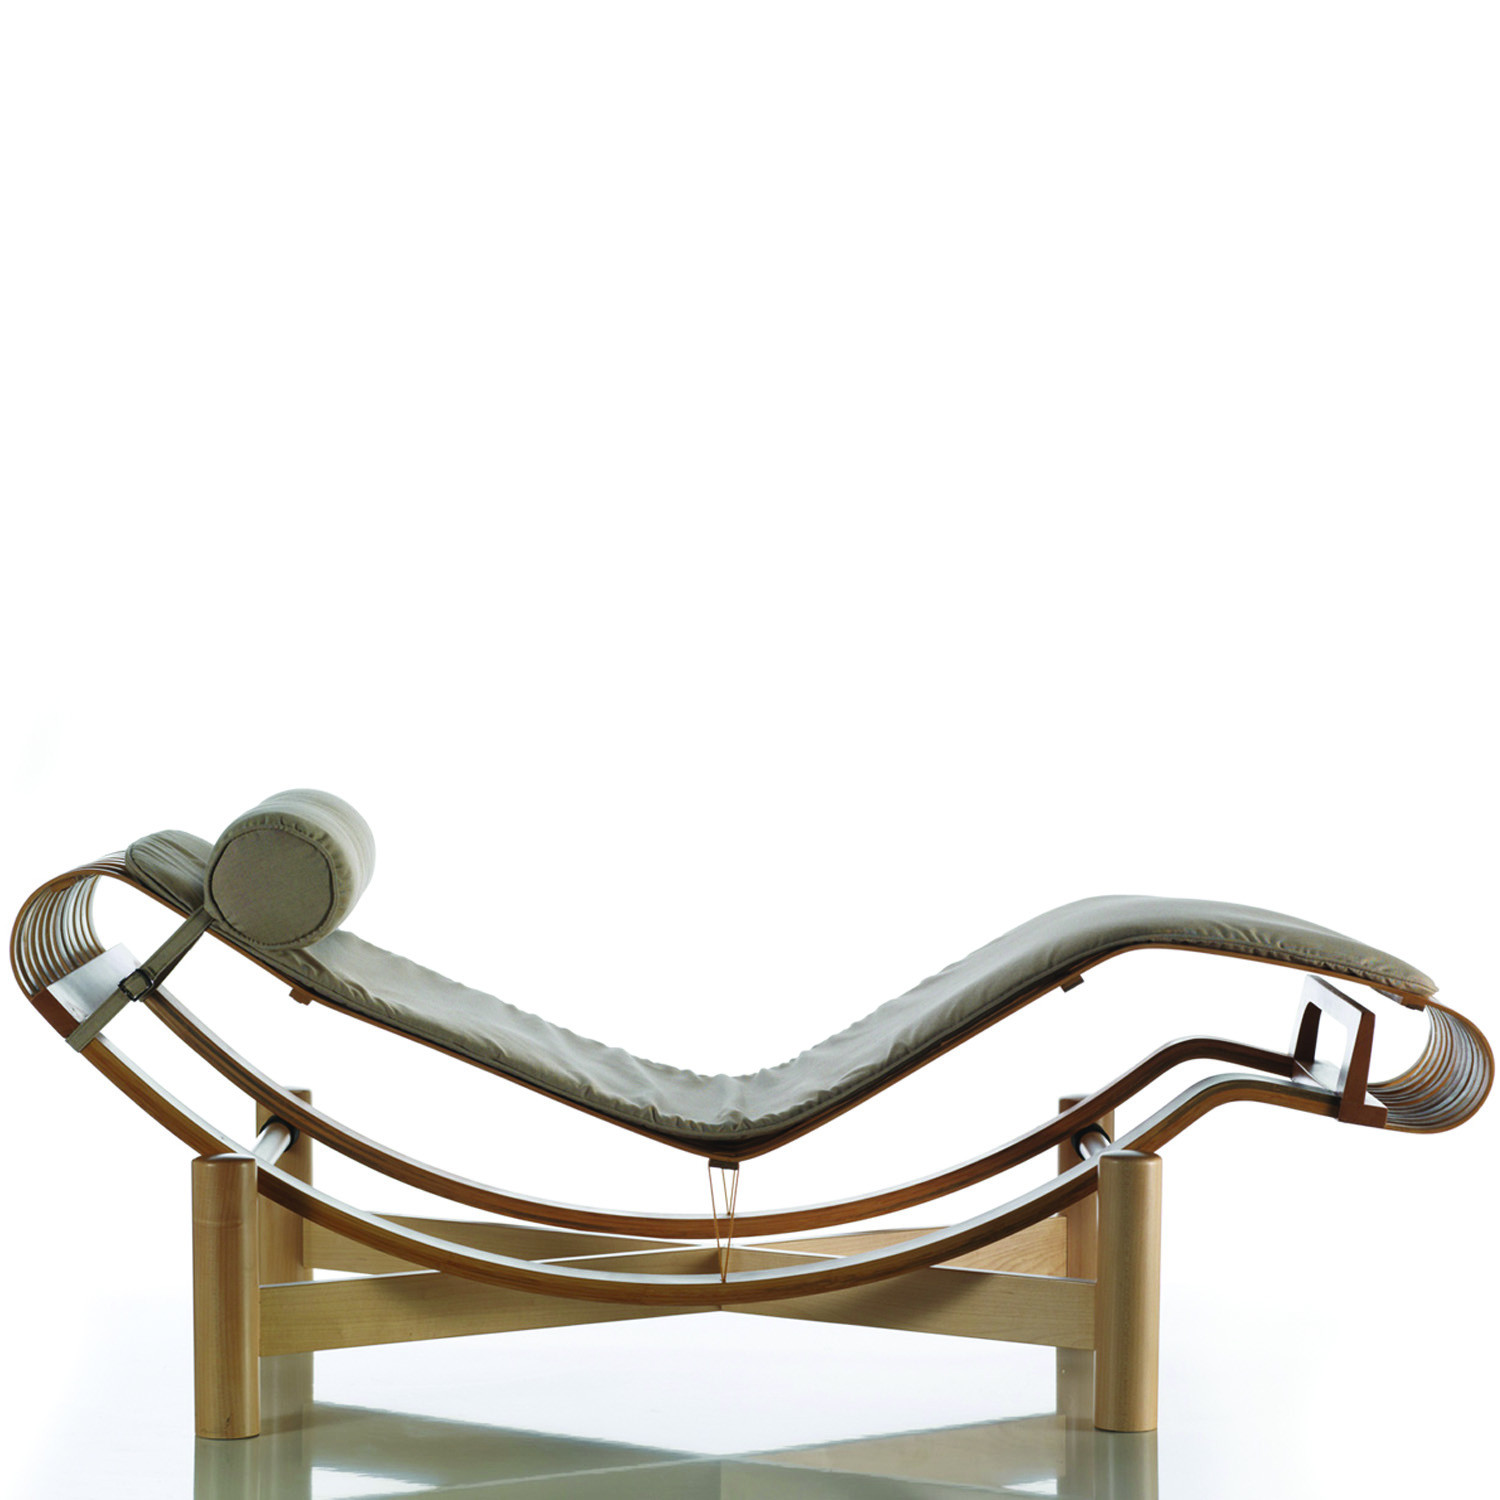 522 Tokyo Chaise Longue Side